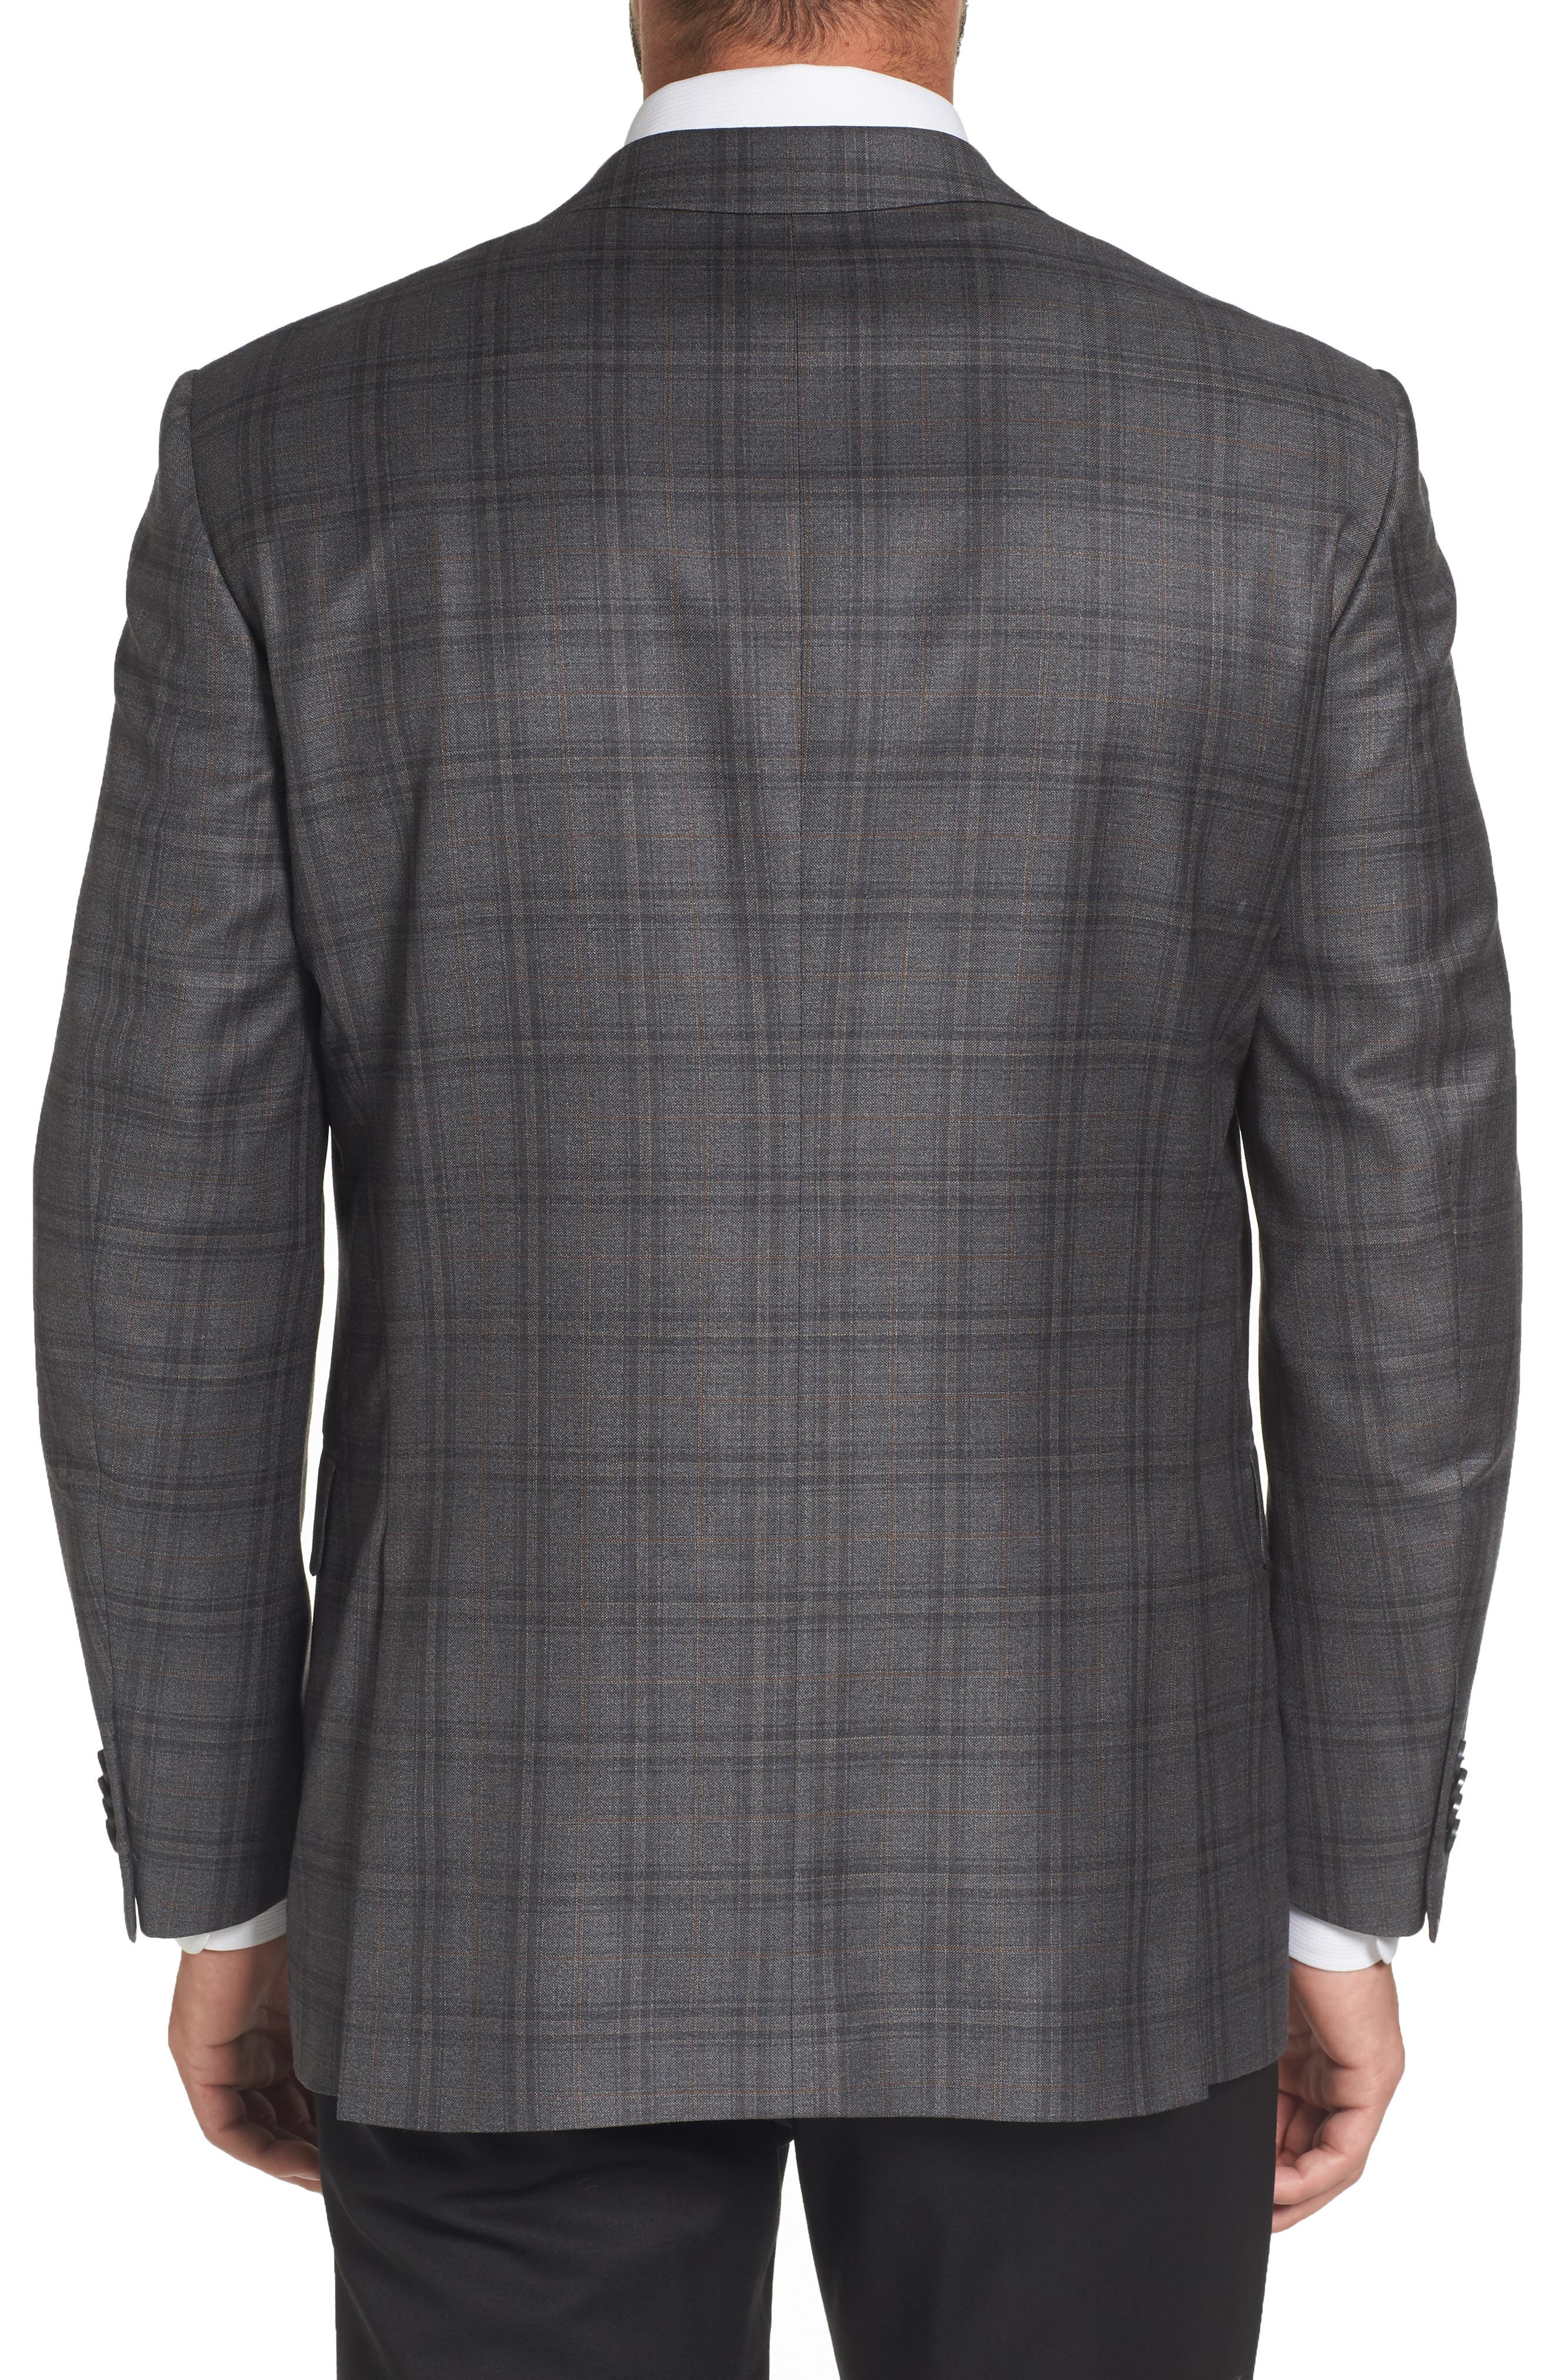 Flynn Classic Fit Plaid Wool Sport Coat,                             Alternate thumbnail 2, color,                             020